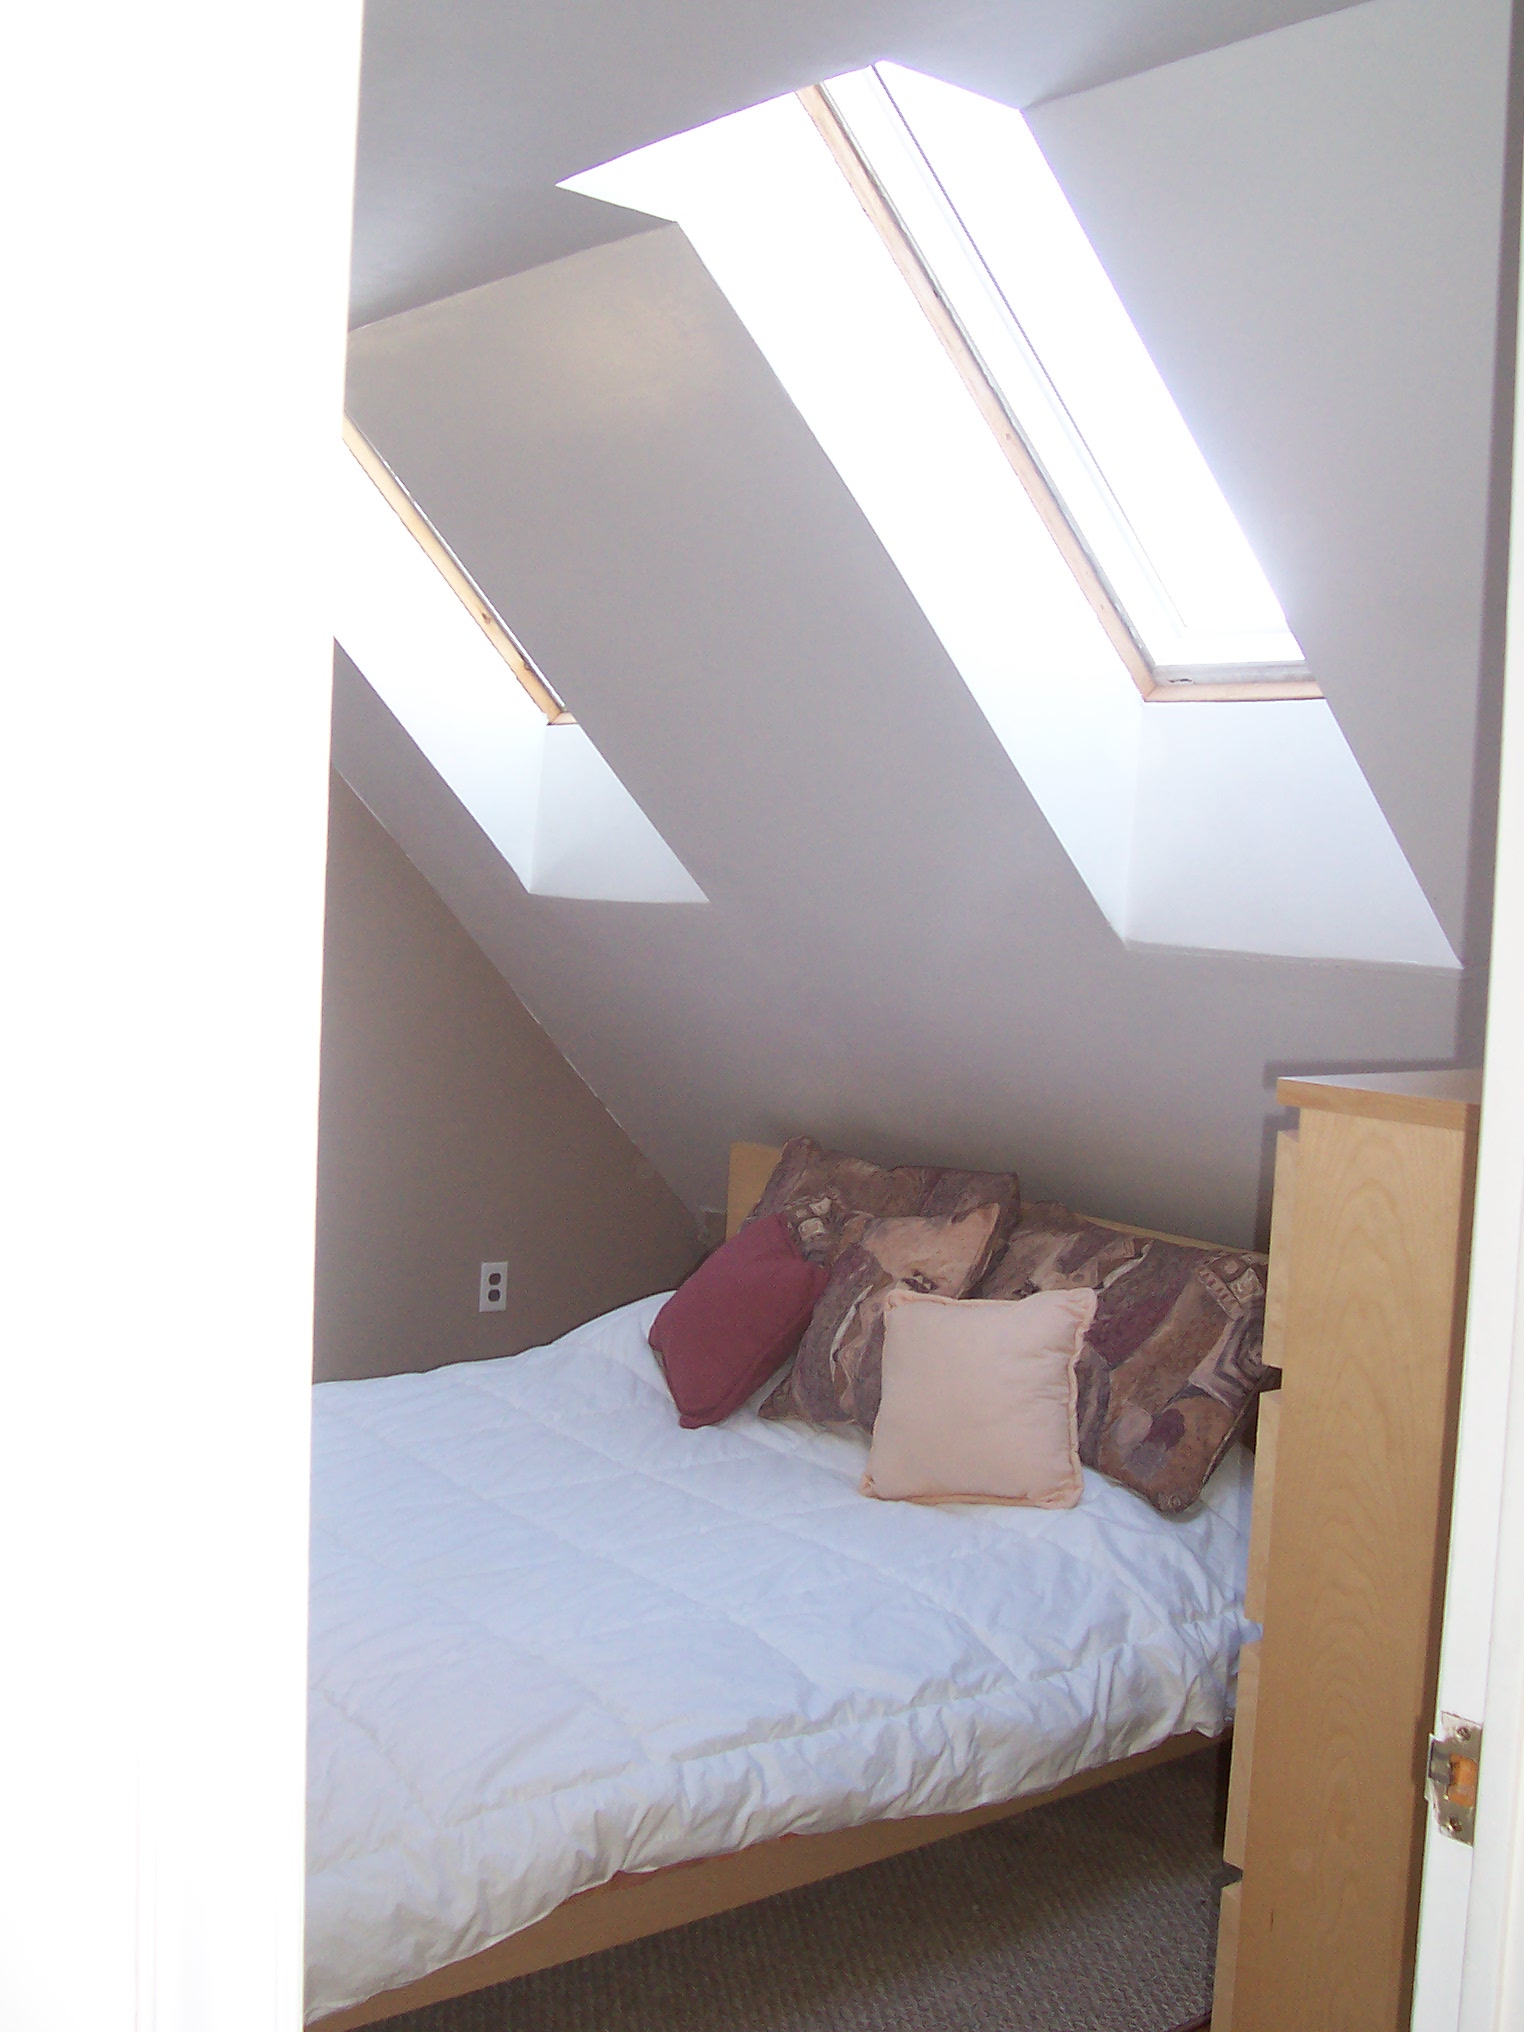 One of the bedrooms with skylight.